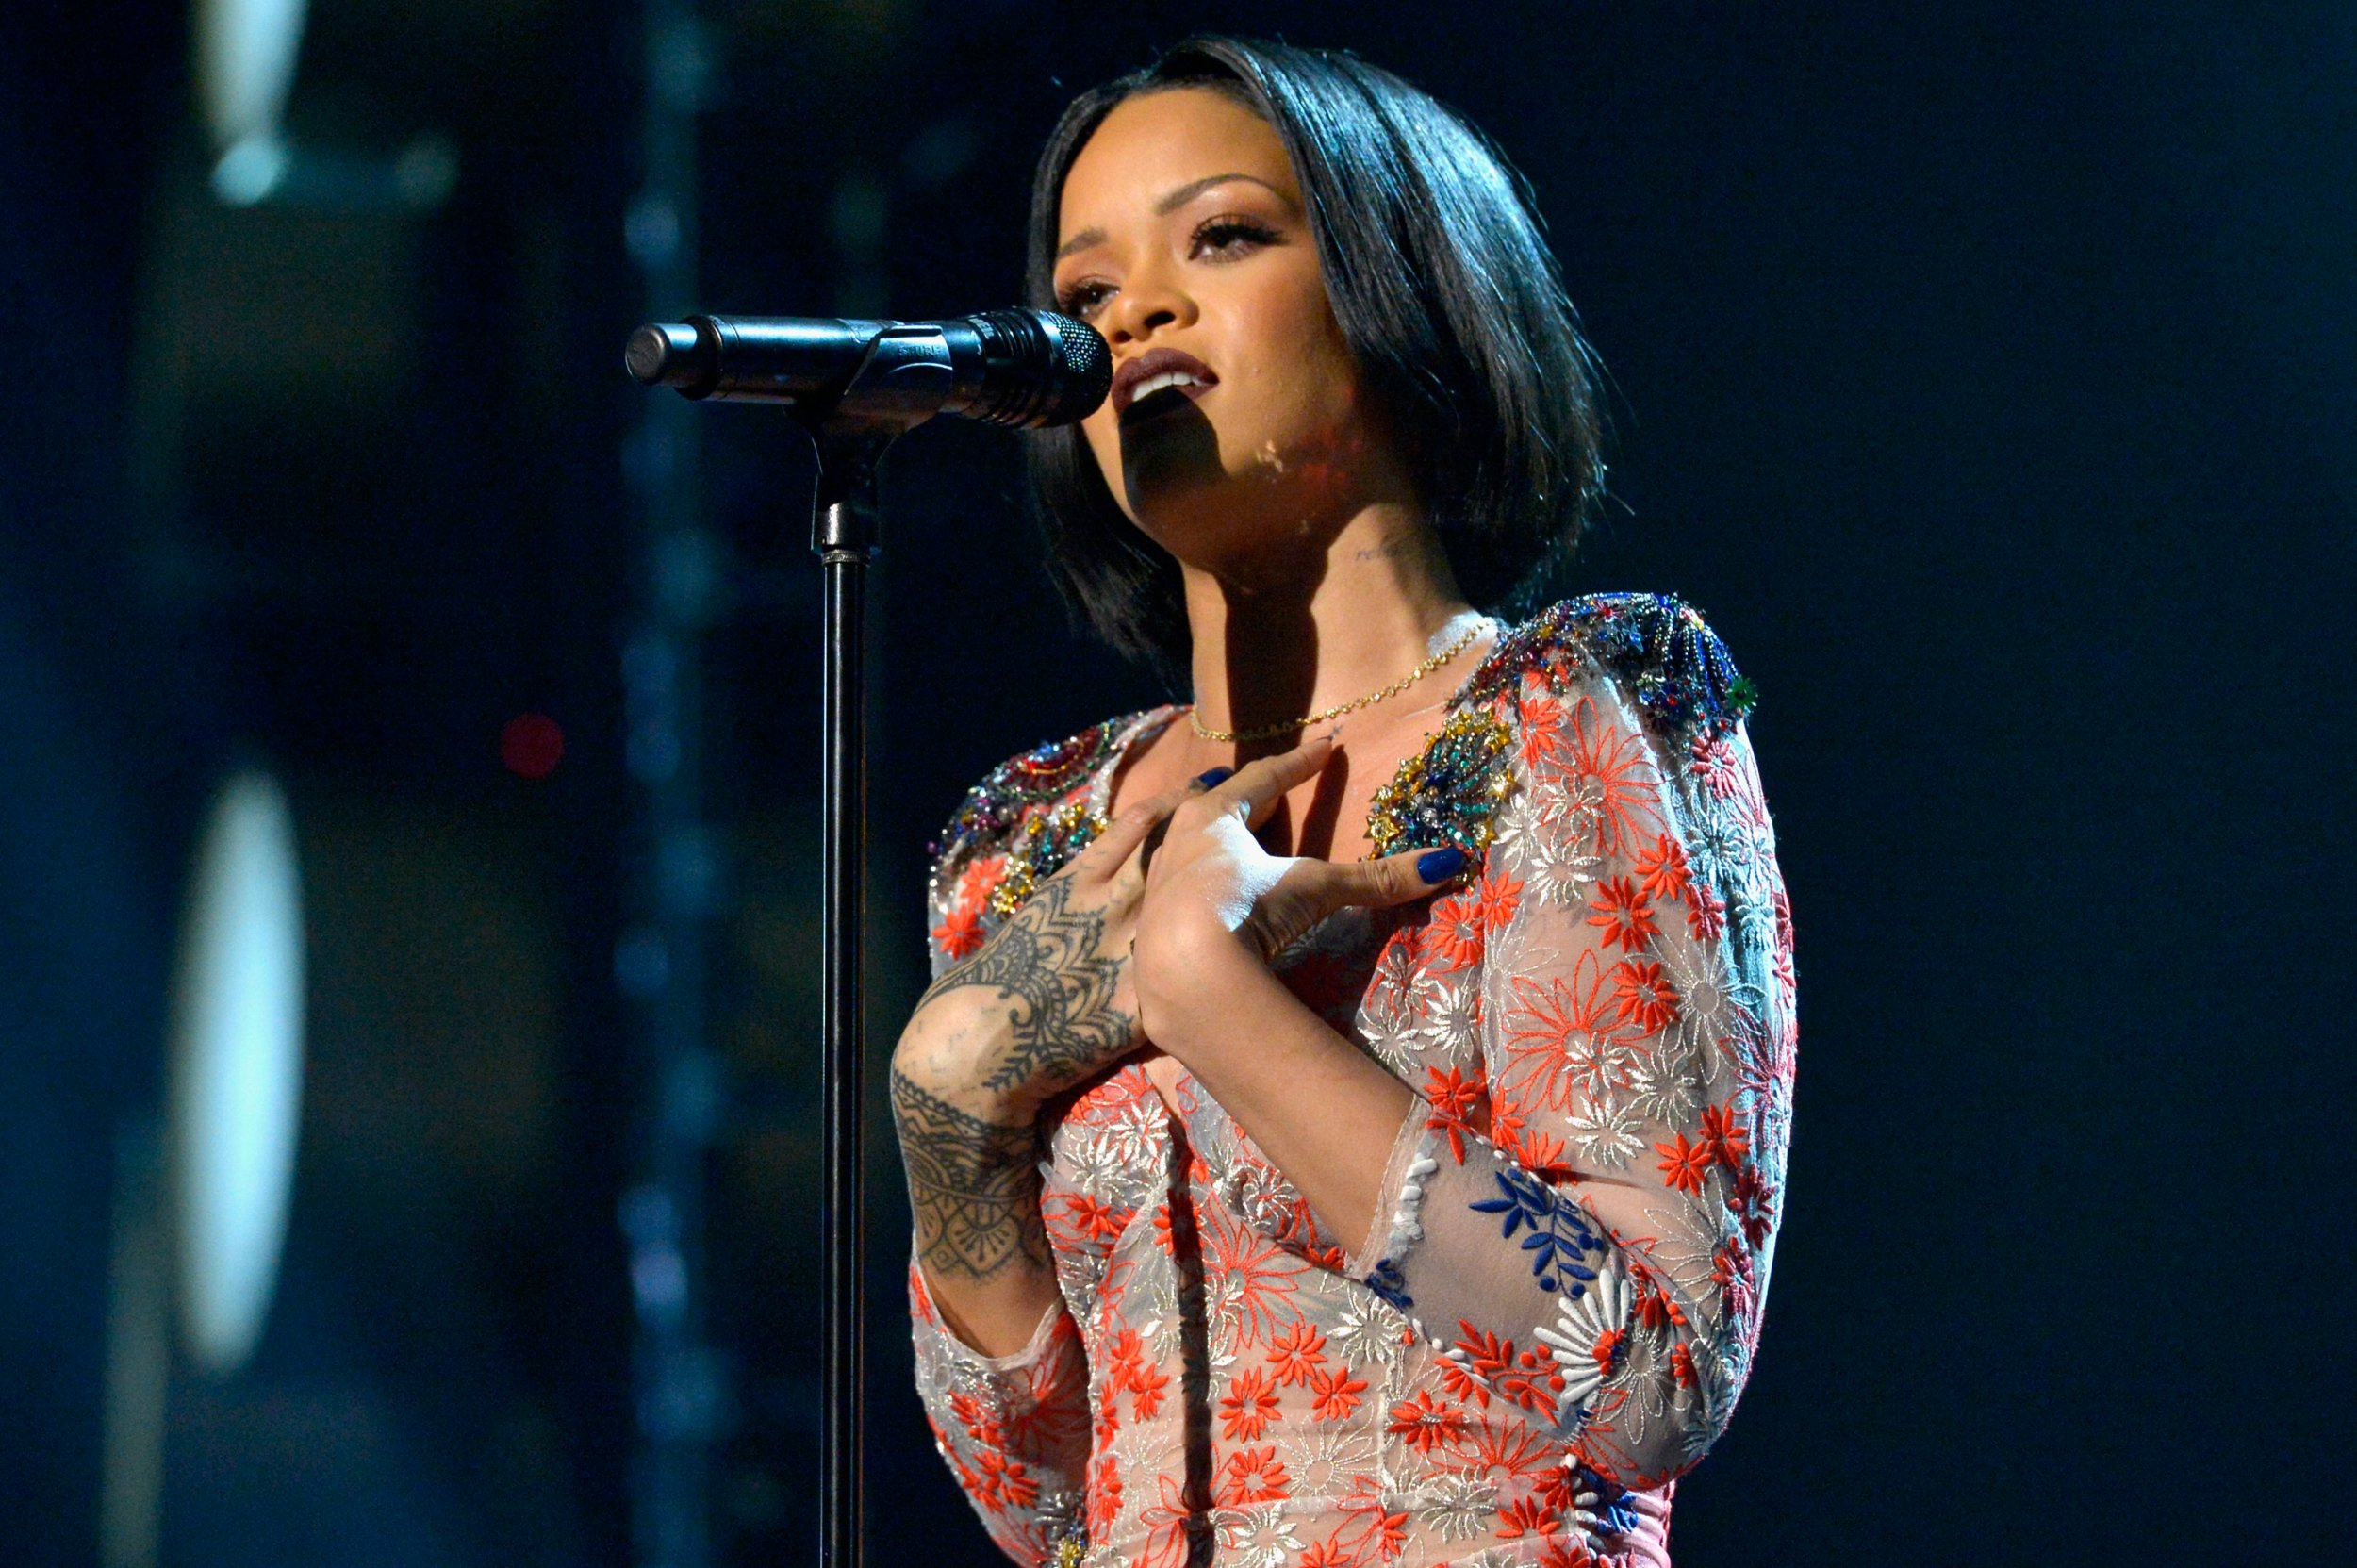 The Grammys: Rihanna cancels performance at the last minute